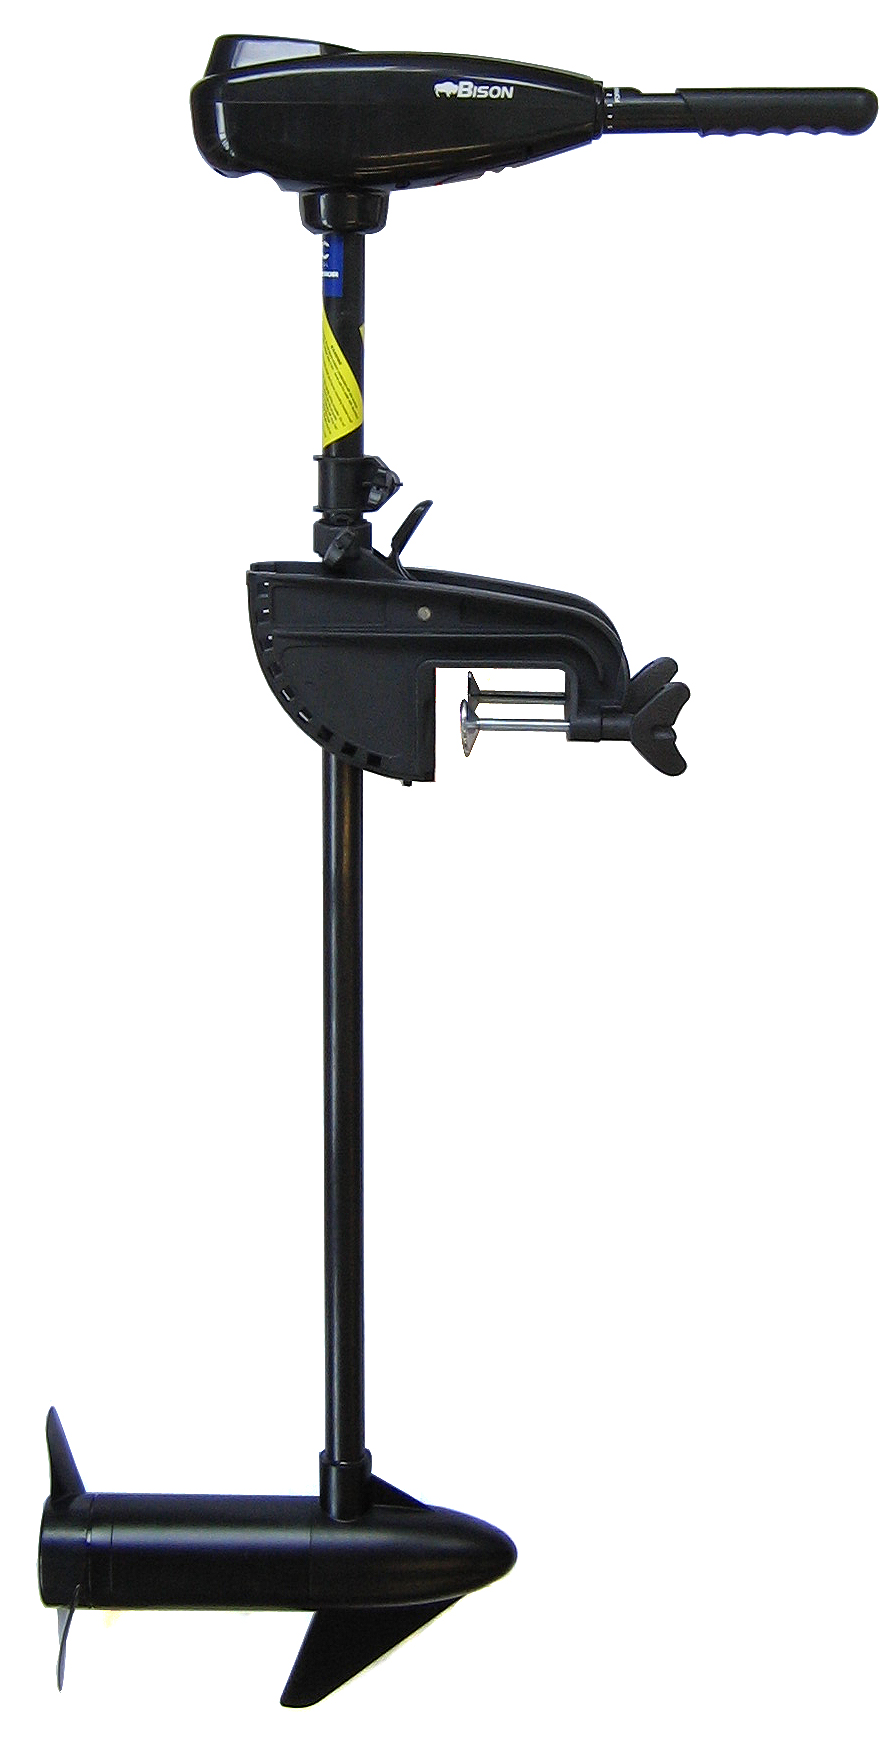 BISON 55ft/lb ELECTRIC OUTBOARD MOTOR Enlarged Preview